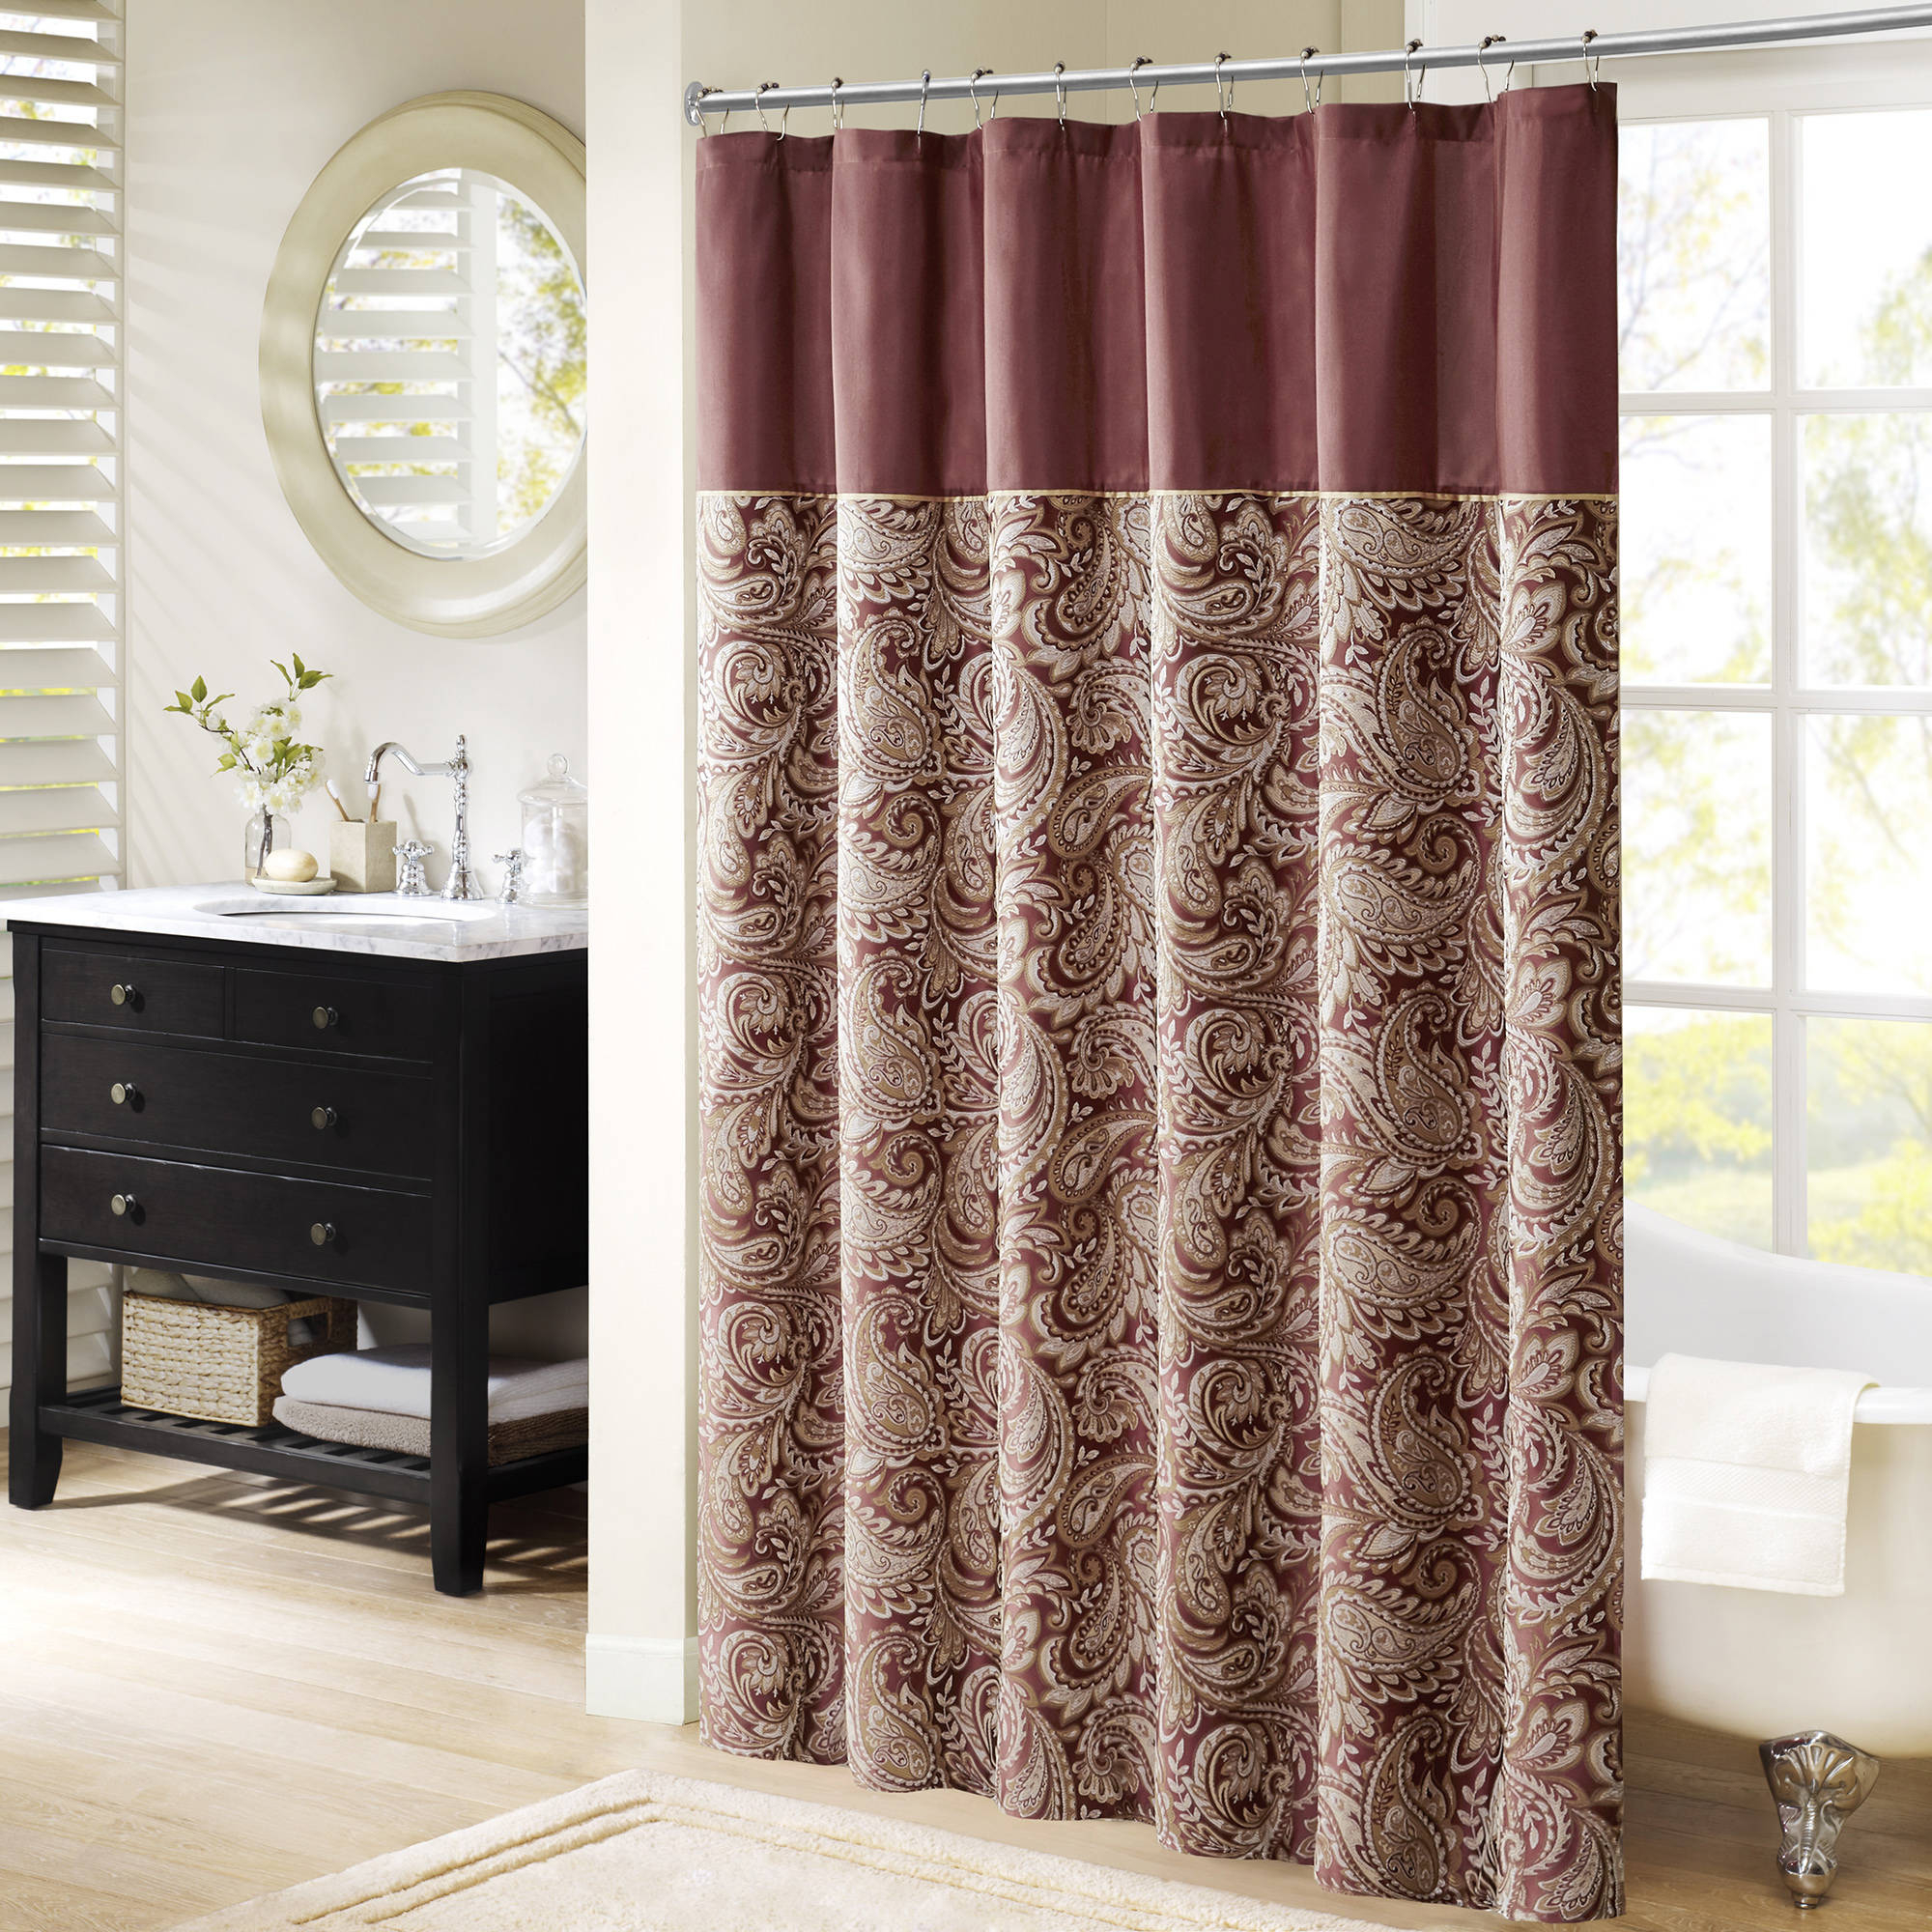 All Types Of Shower Curtains • Shower Curtains Ideas